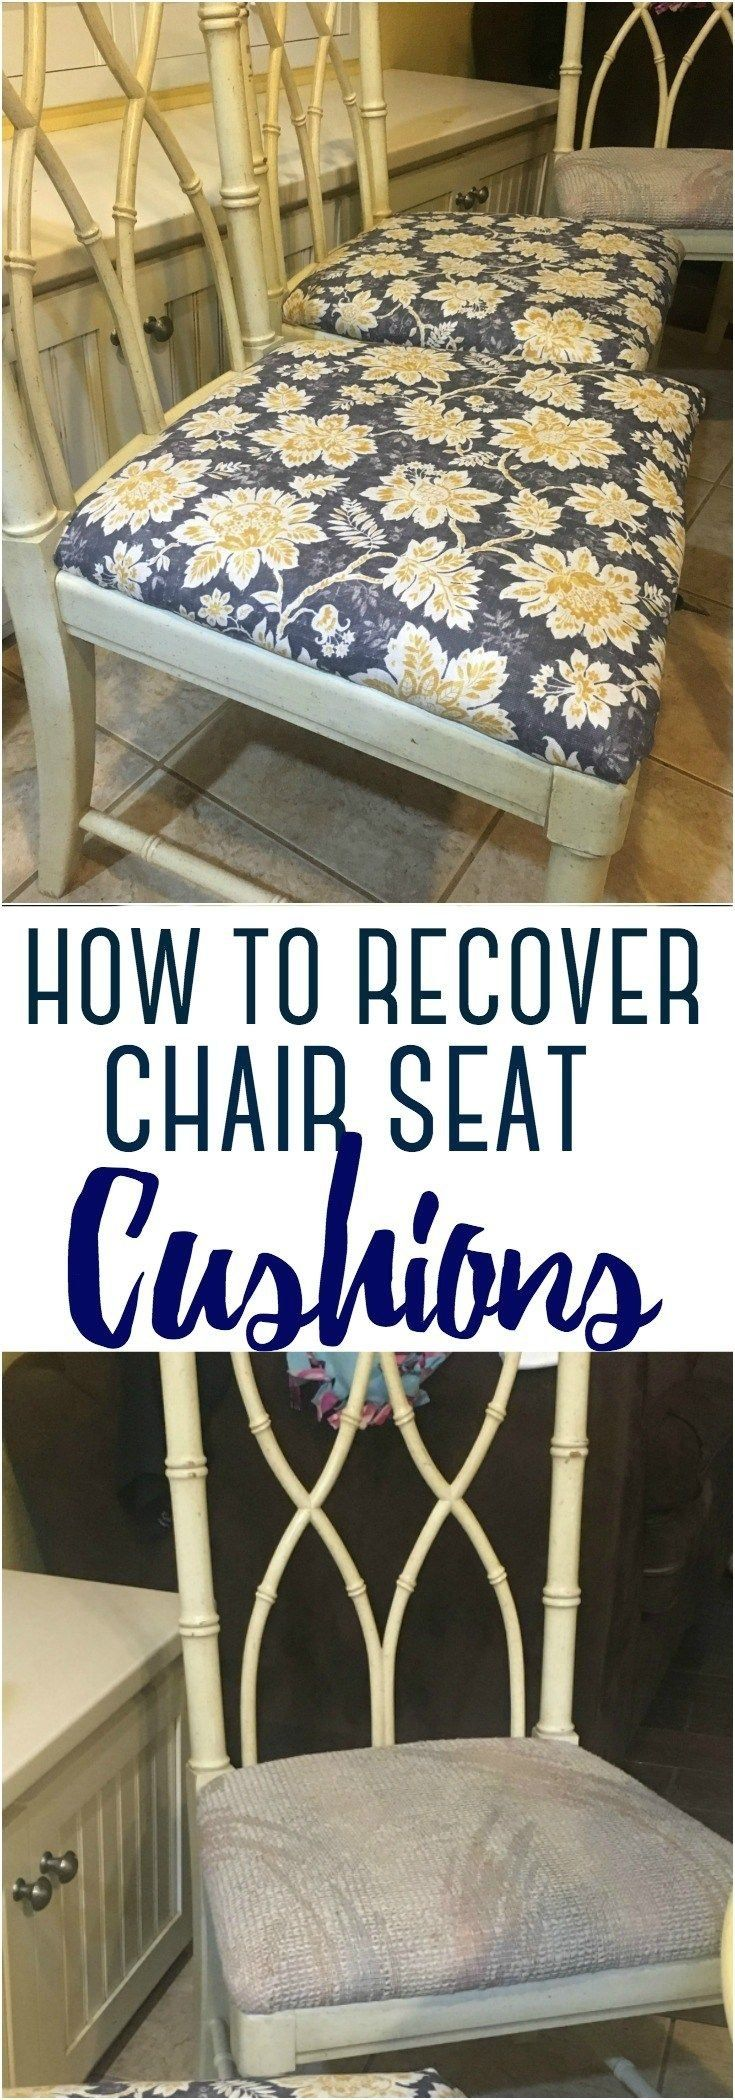 How to recover chair seat cushions 1000 in 2020